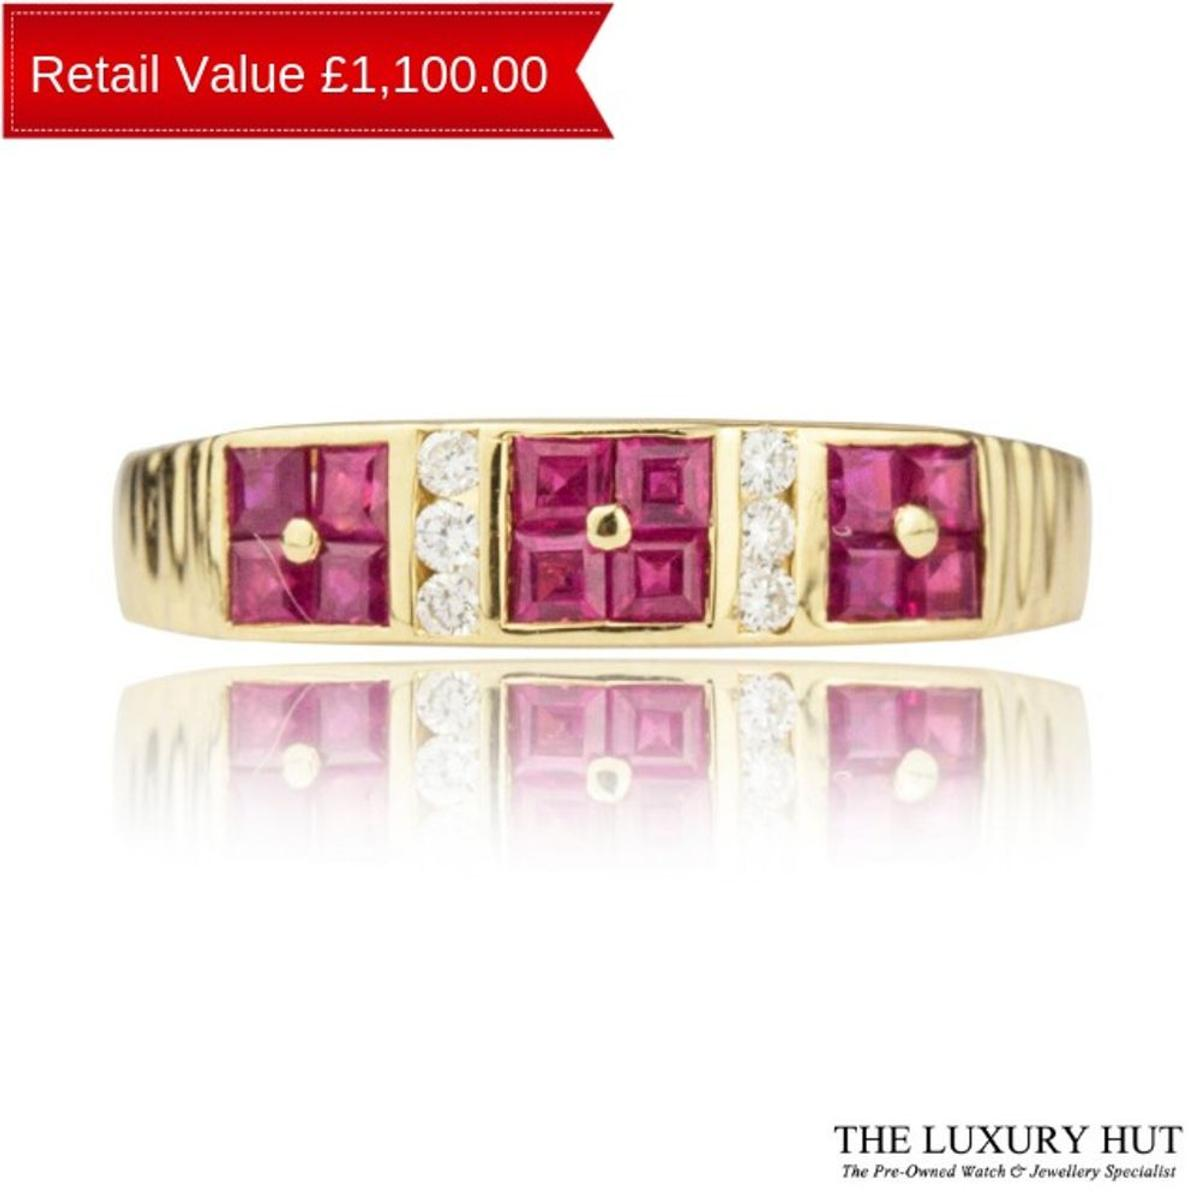 18ct Yellow Gold Ruby And Diamond Band Ring In Ec1n 8pn London